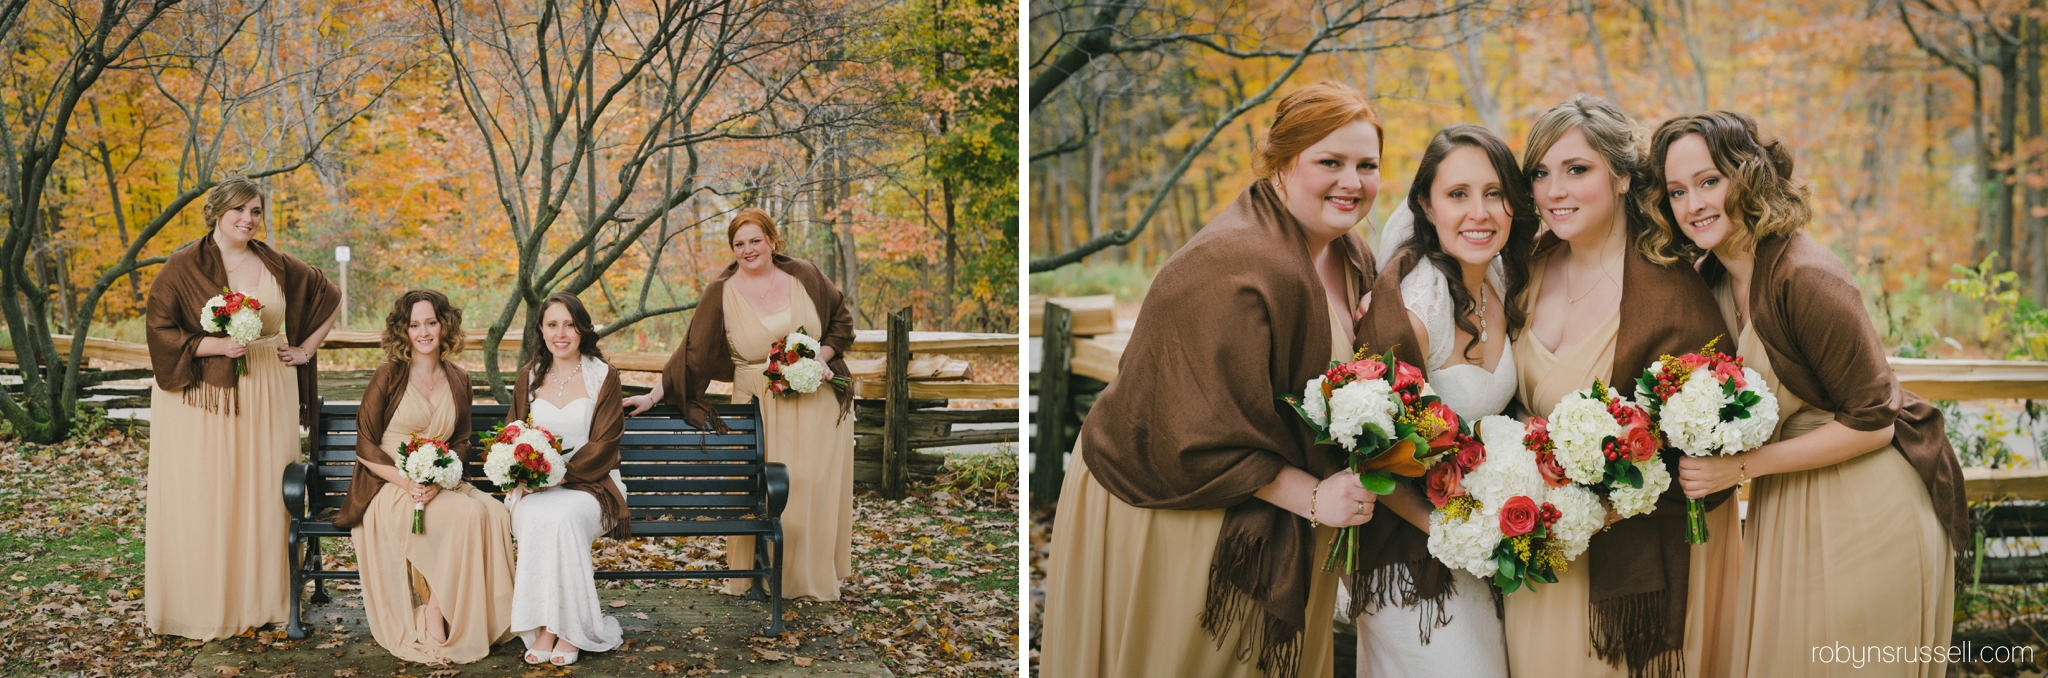 32-bride-and-bridal-party-fall-leaves-canadian-wedding.jpg